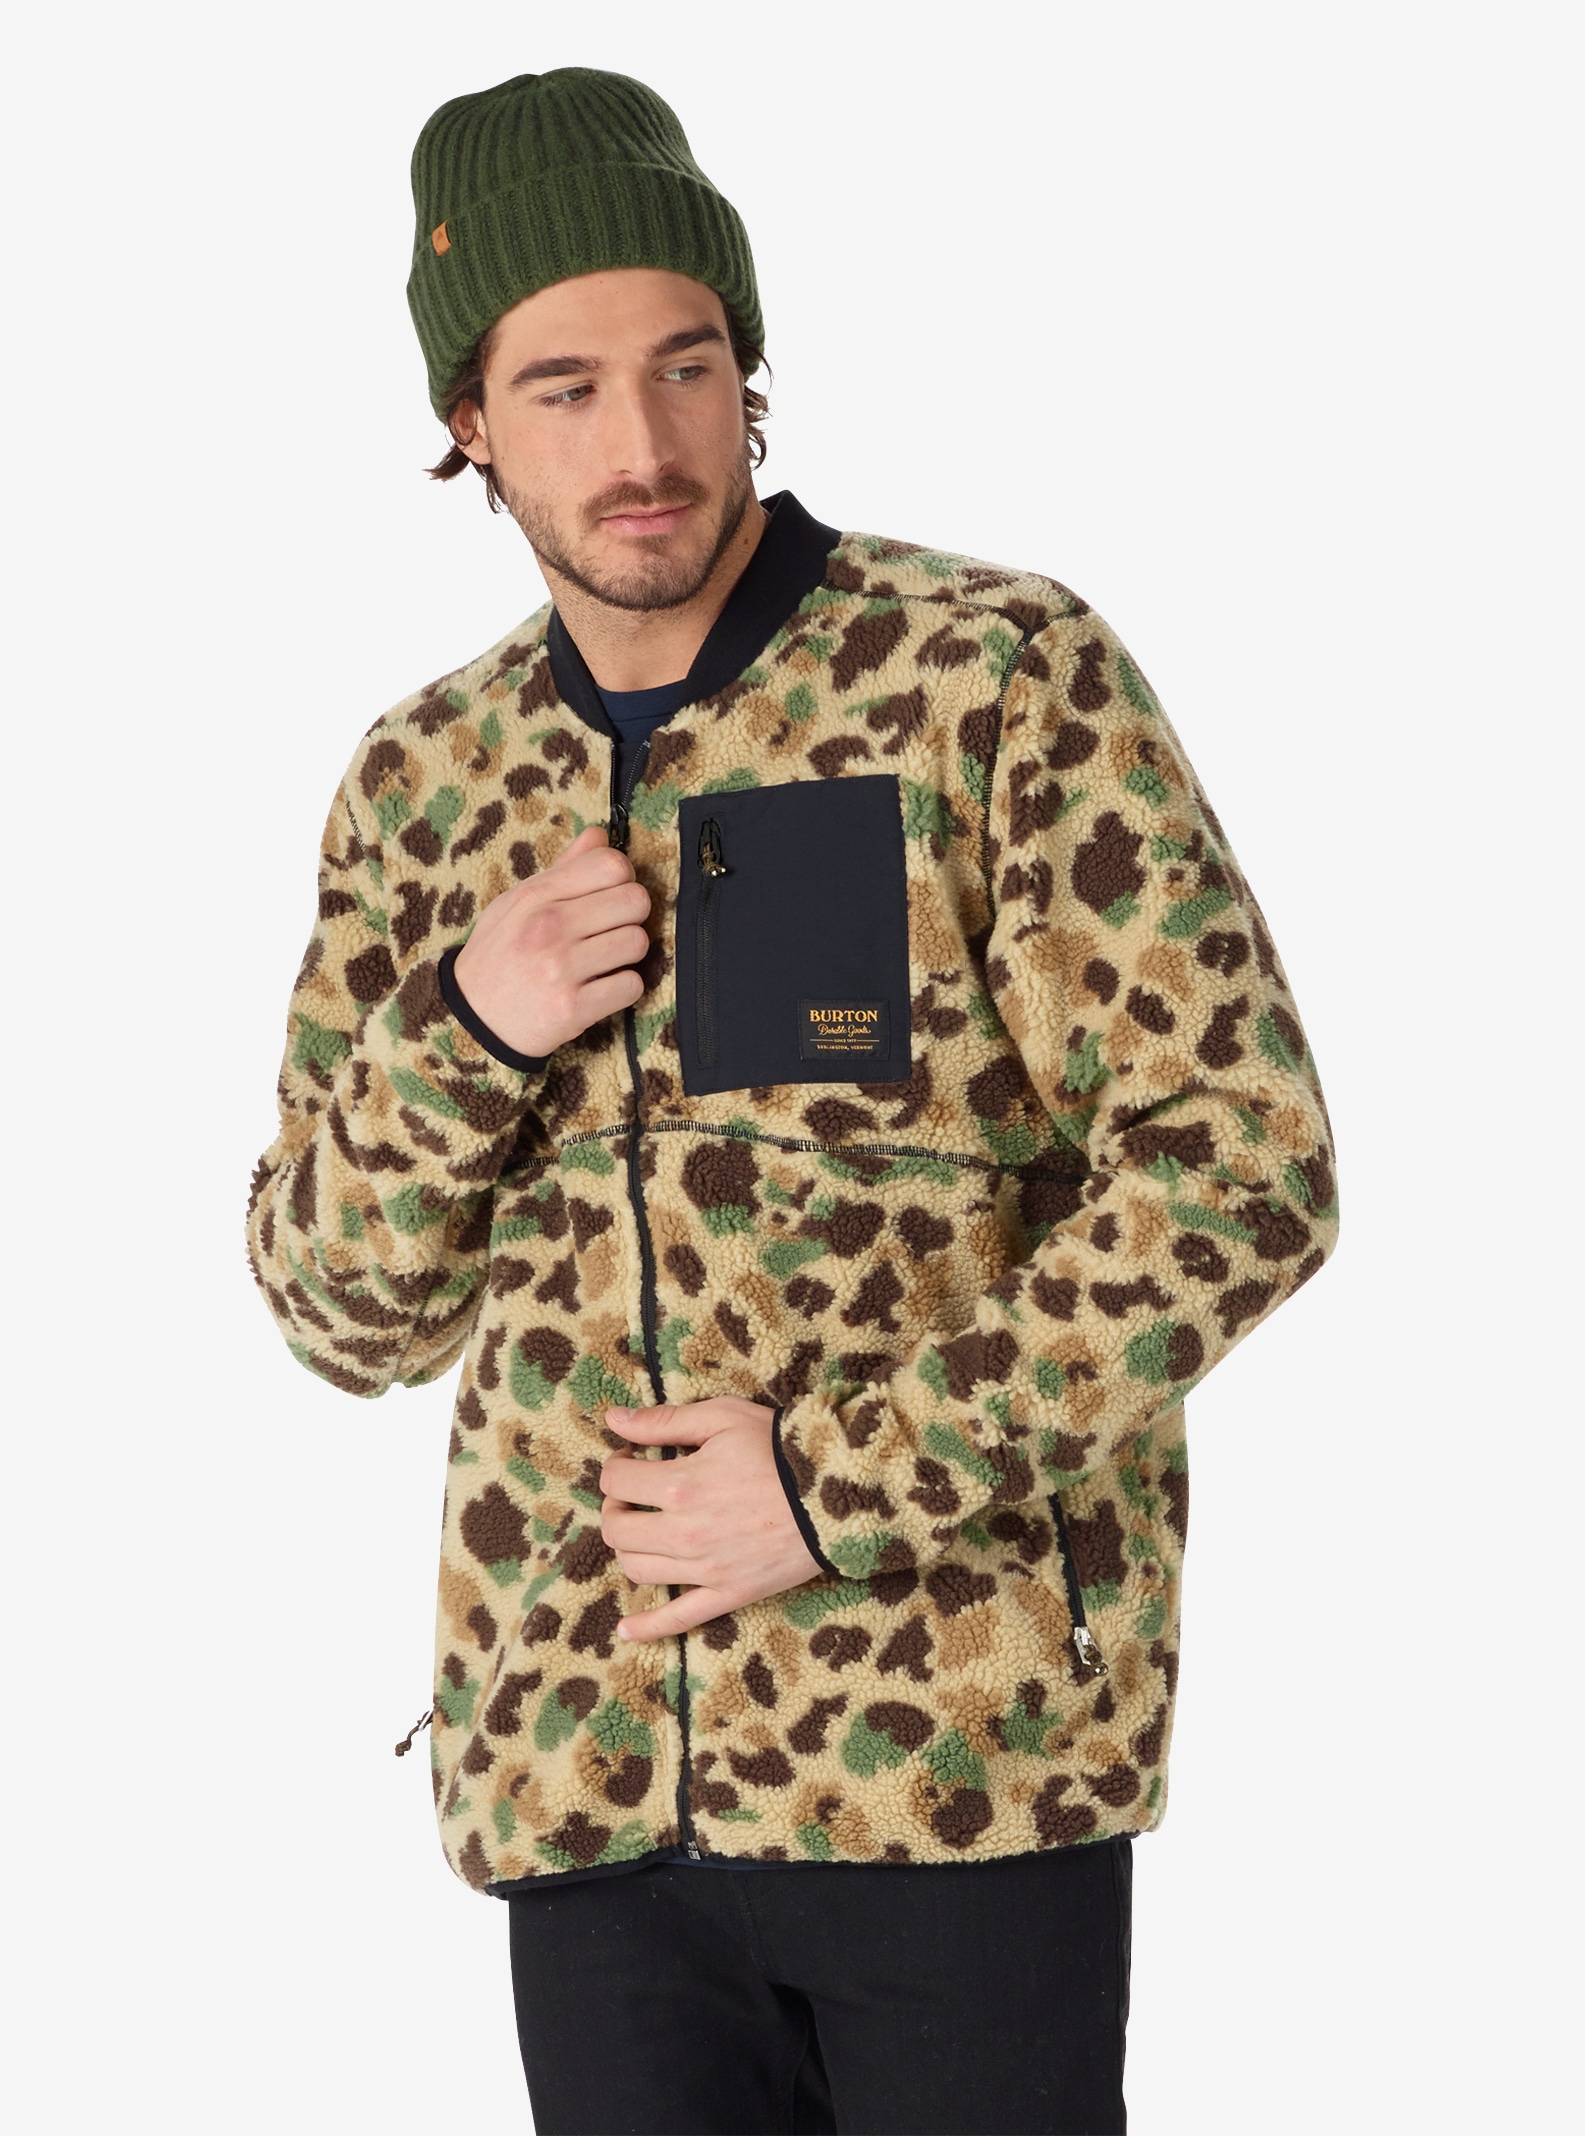 Men's Burton Grove Full-Zip Fleece shown in Duck Camo Jacquard